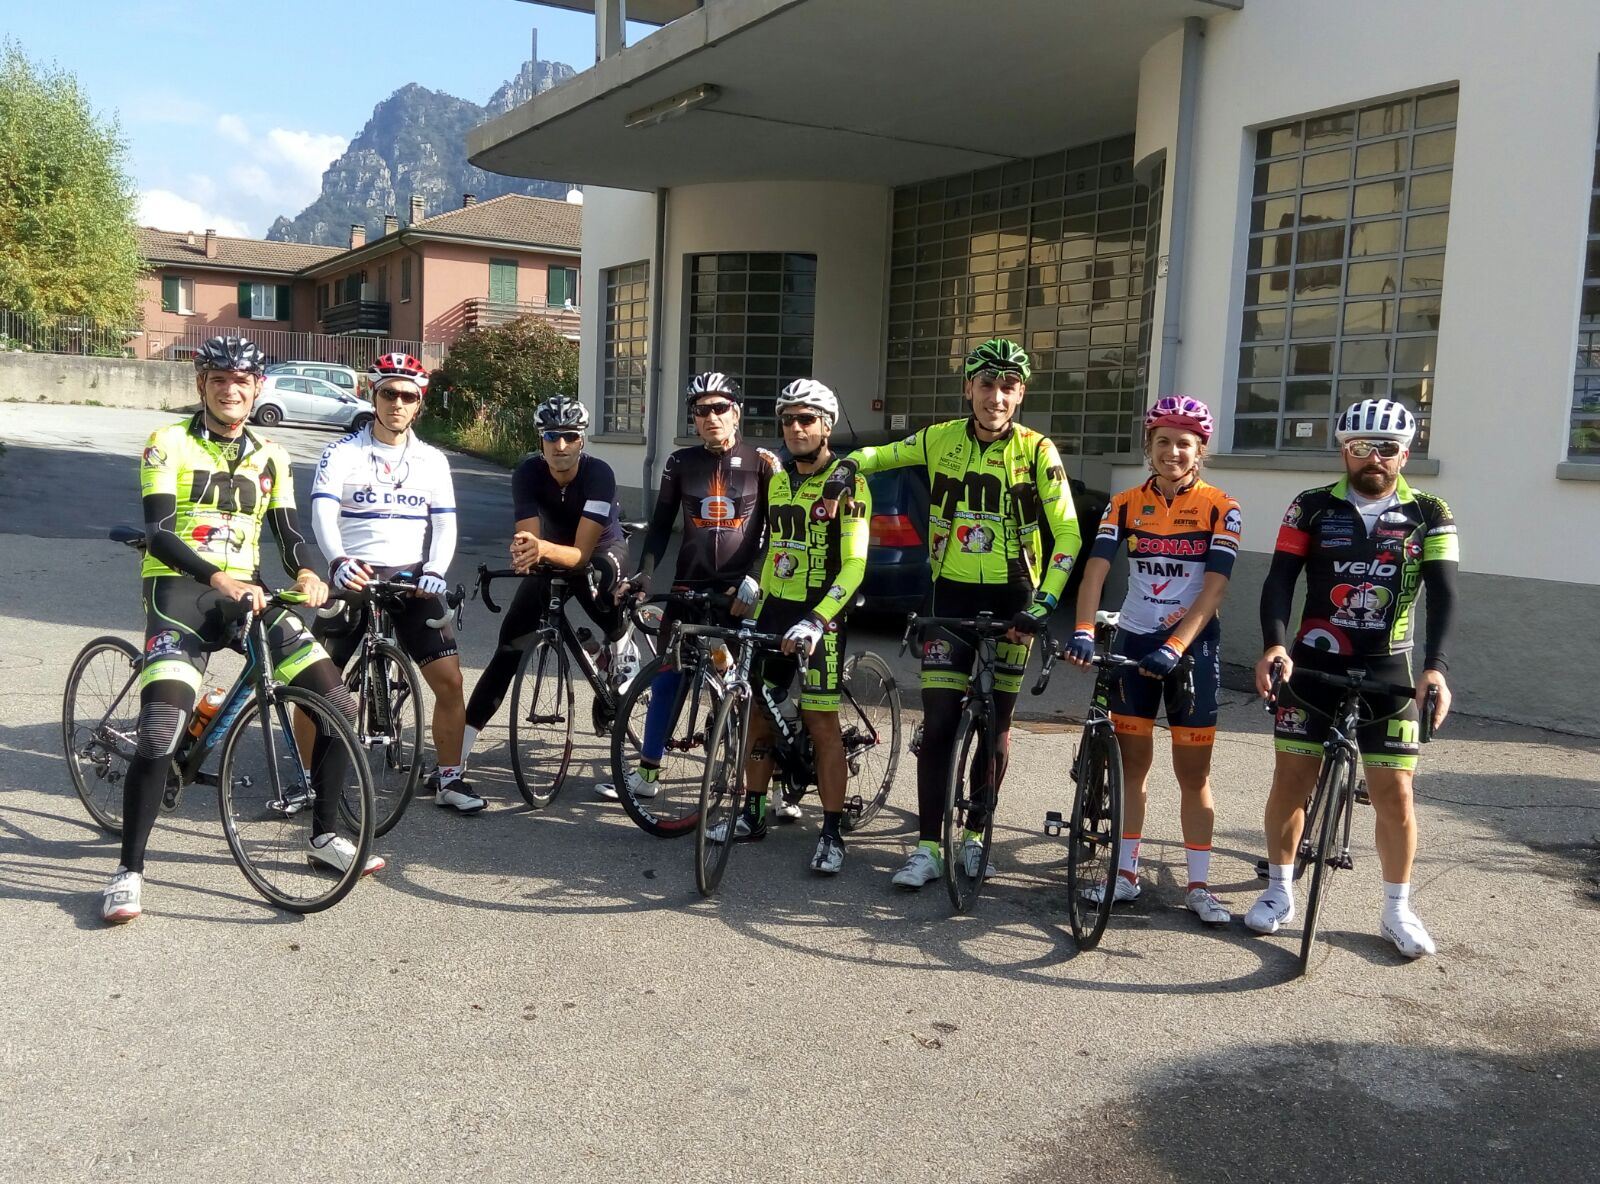 makakoteampower: CYCLING & RUNNING IN QUESTO WEEK END DI ...